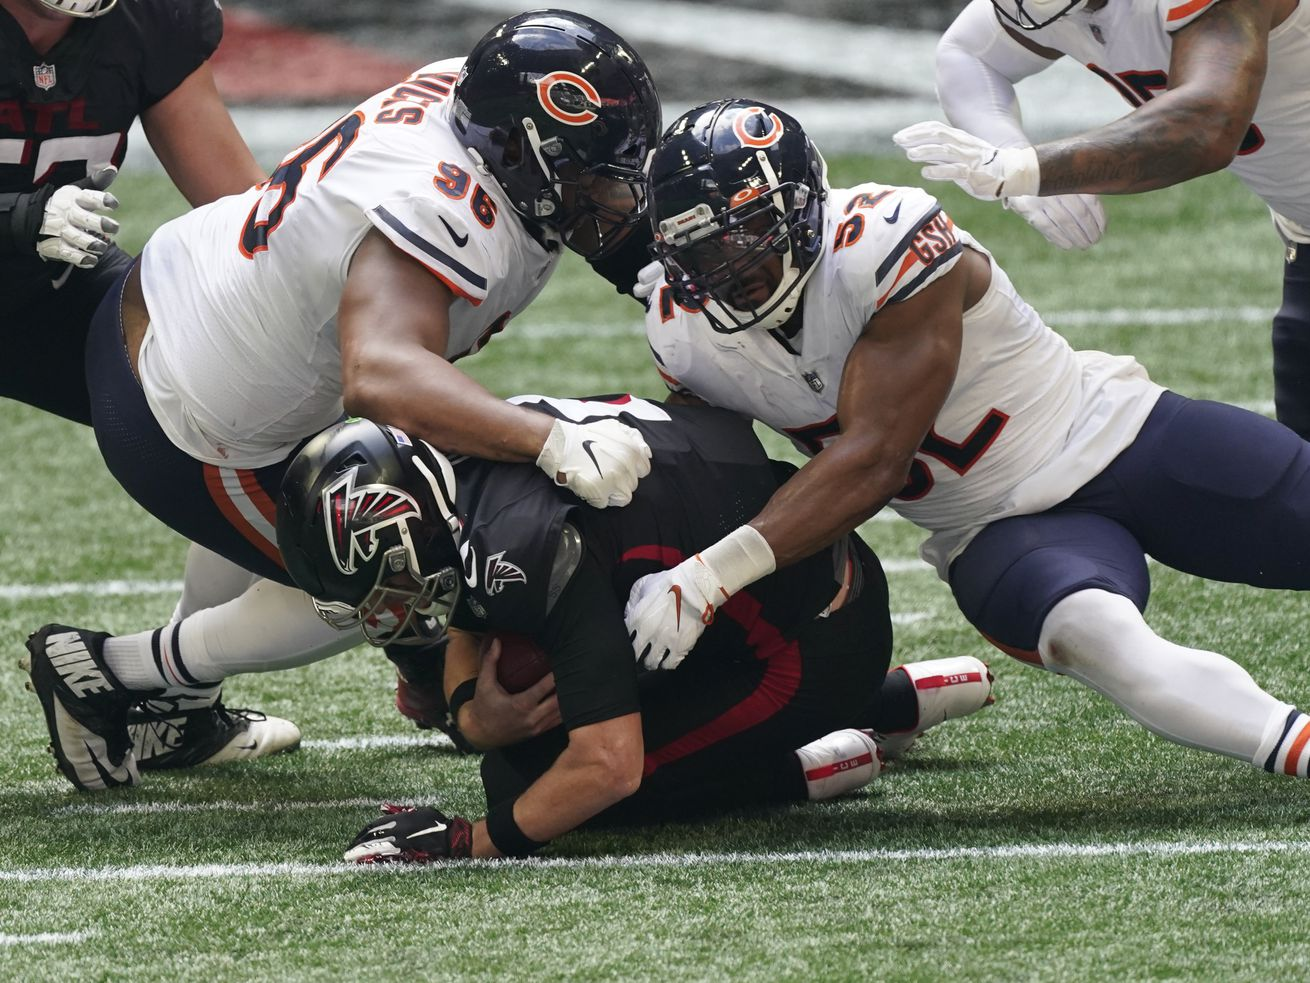 Bears' defense closer to good than great so far, and that's concerning